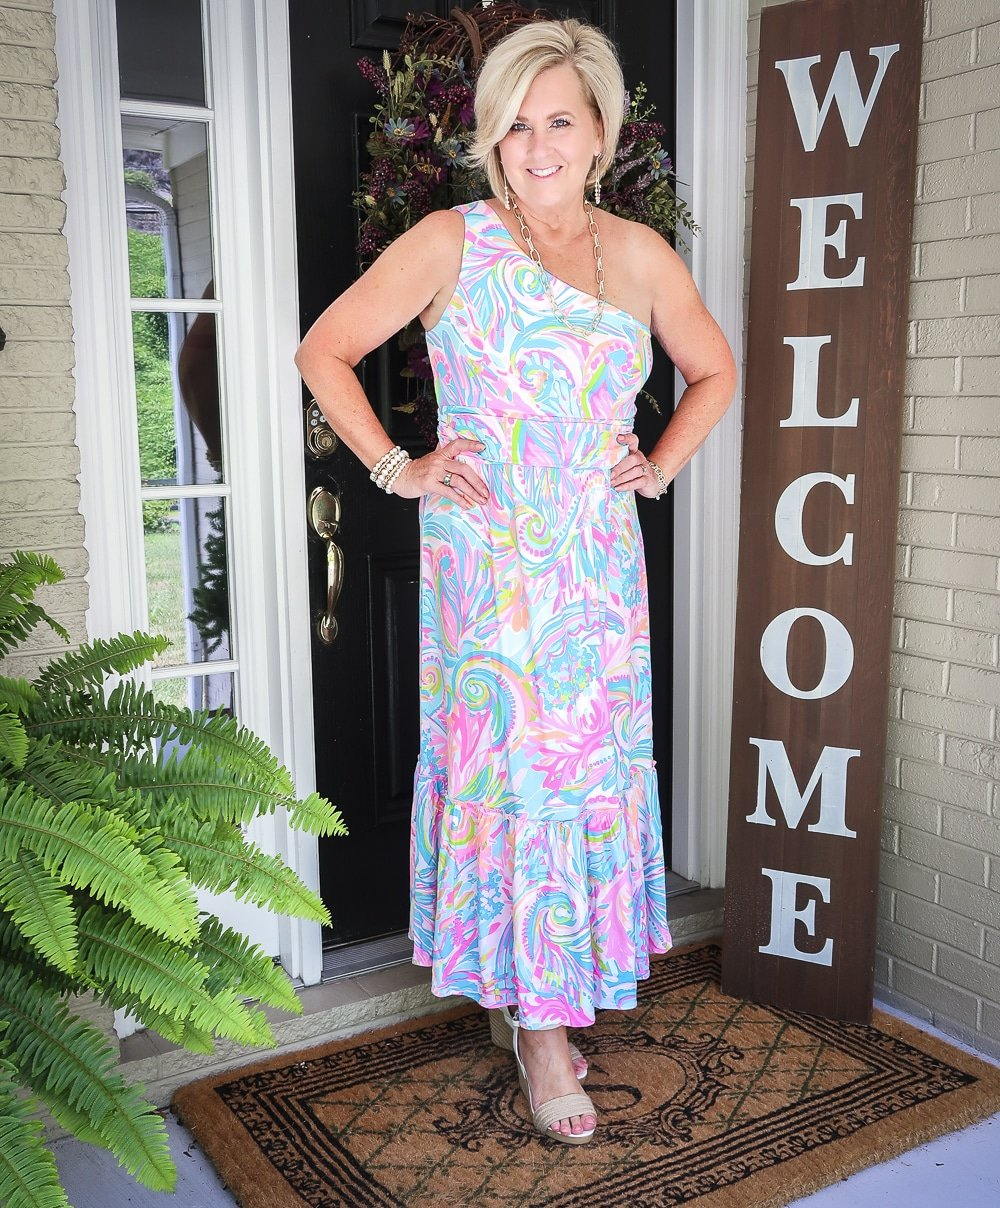 Fashion Blogger 50 Is Not Old is styling a one shoulder Lilly Pulitzer maxi dress with gold jewelry from Kendra Scott